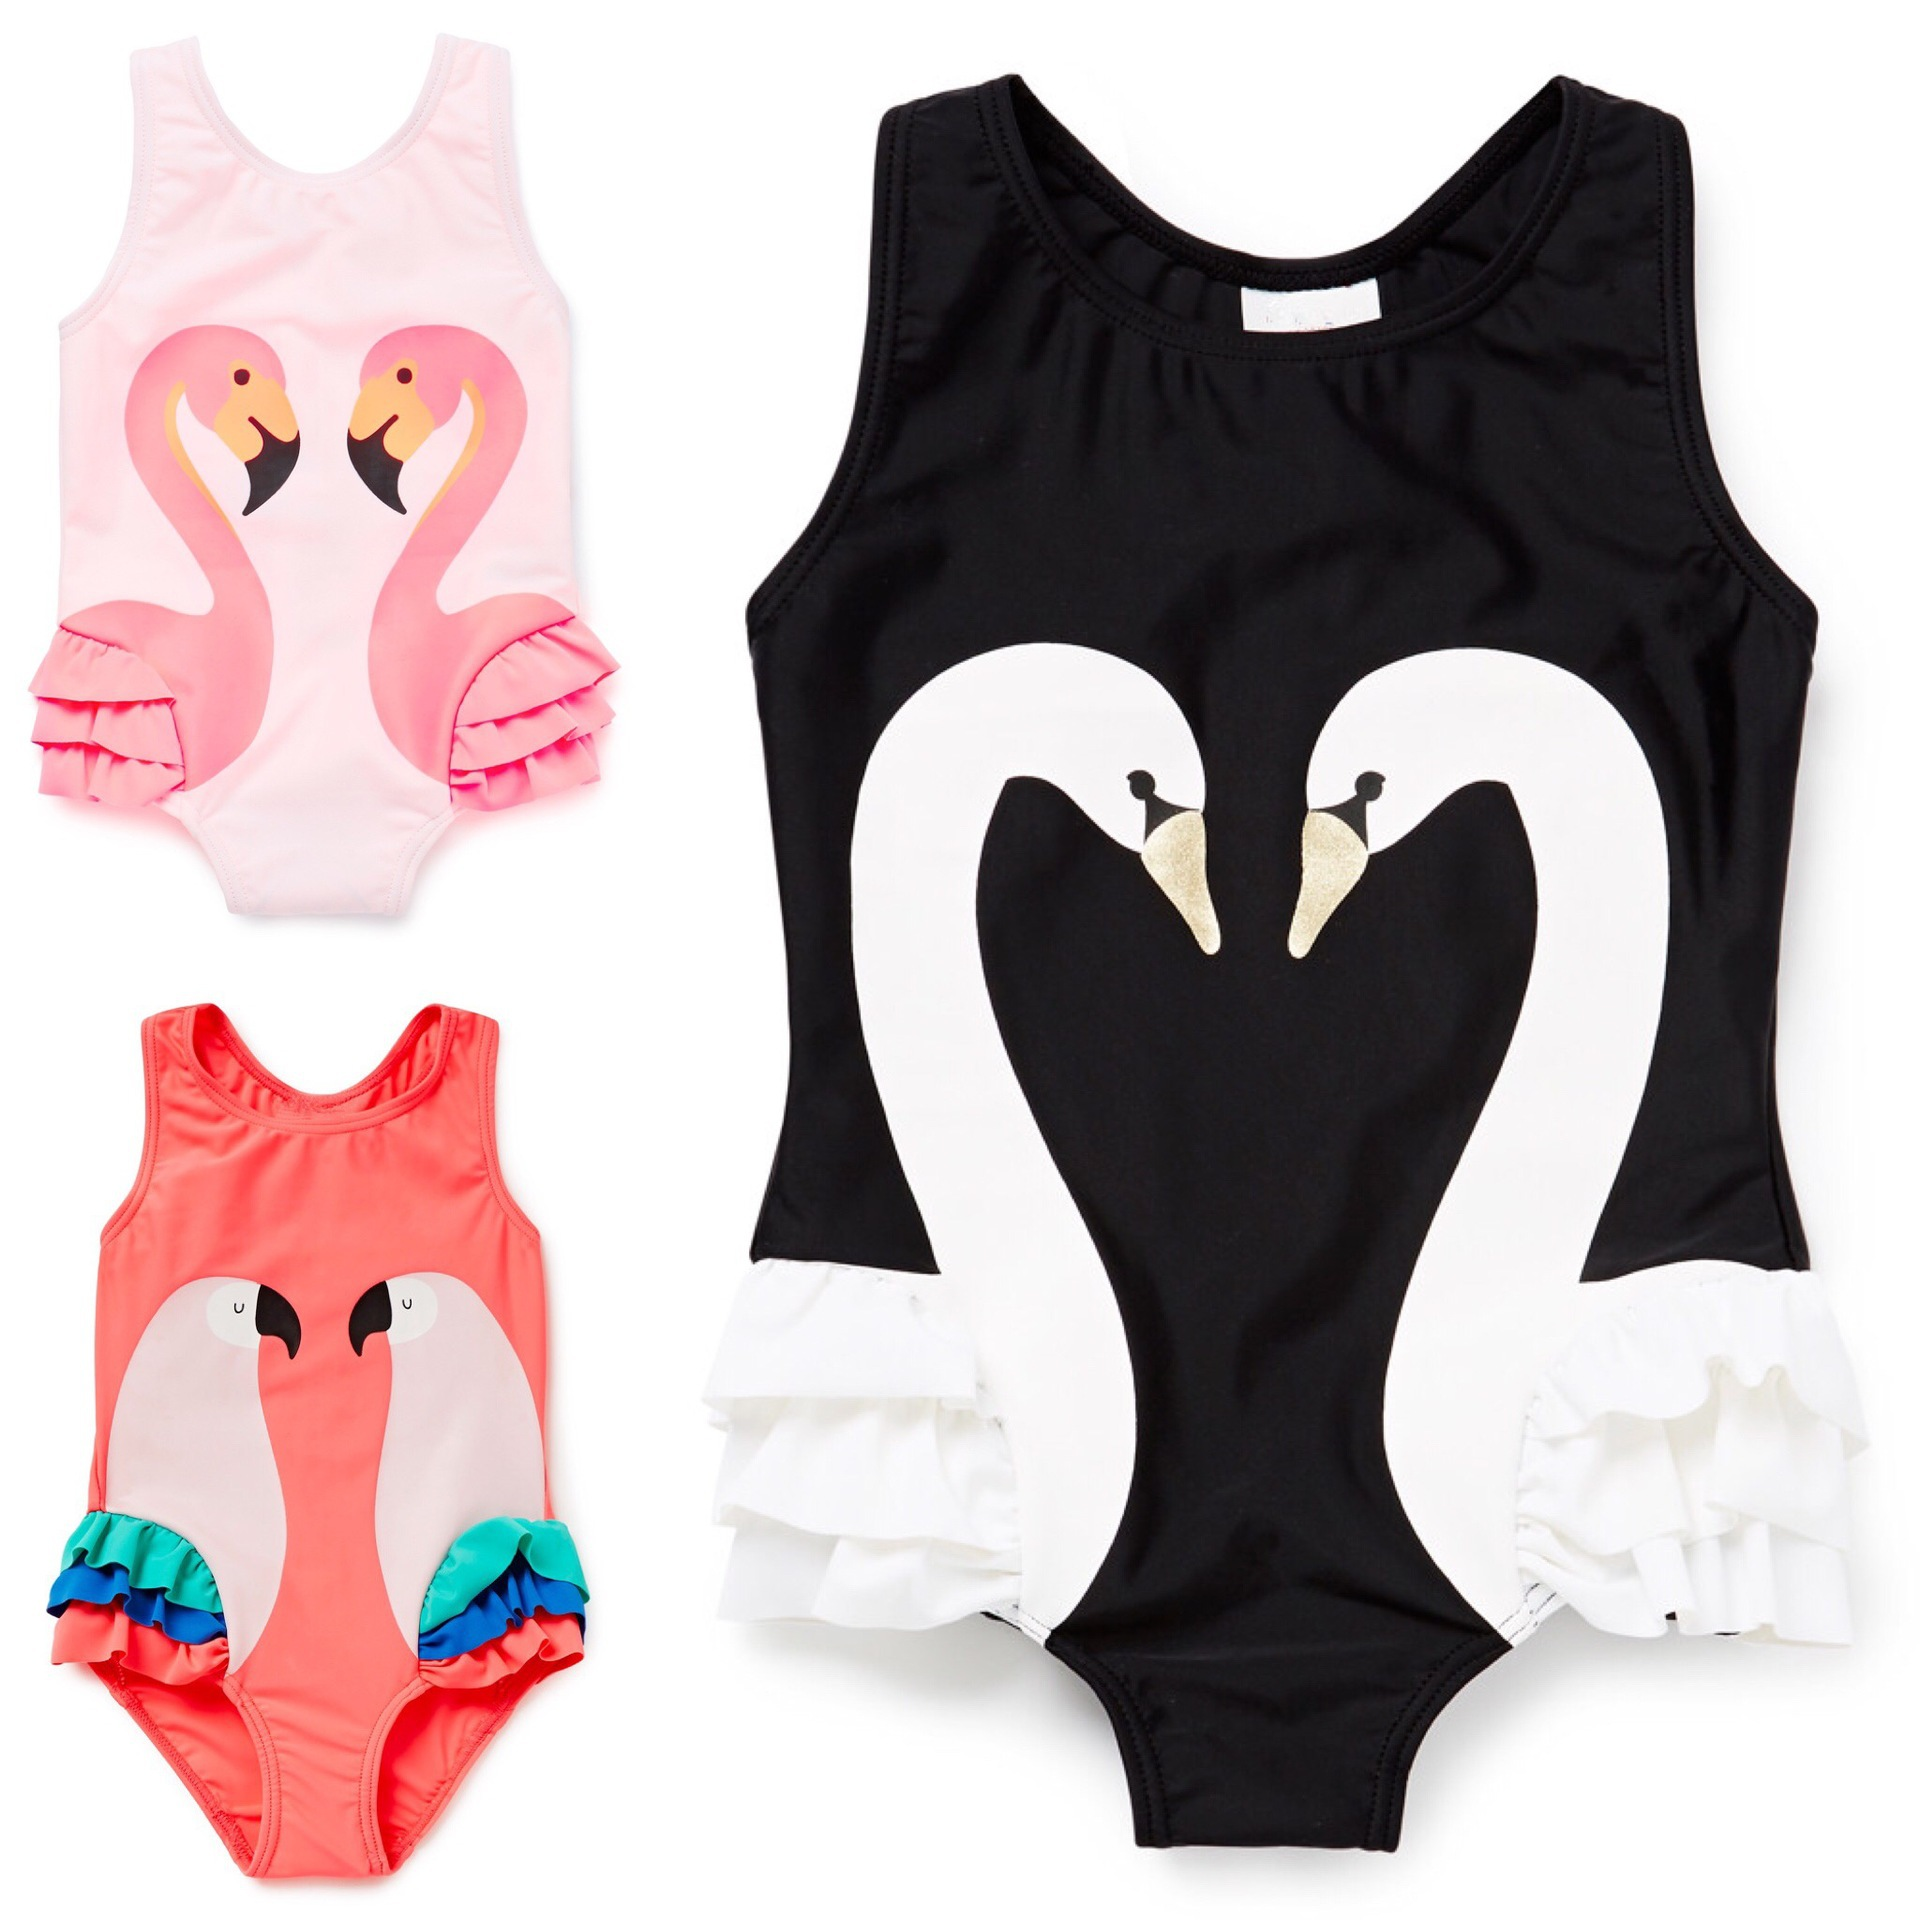 Girls Bikinis One Piece Swimsuits with Cap Baby Swimwear Children Bathing Suit Kids Monokini Swan Flamingos Cartoon Summer Top